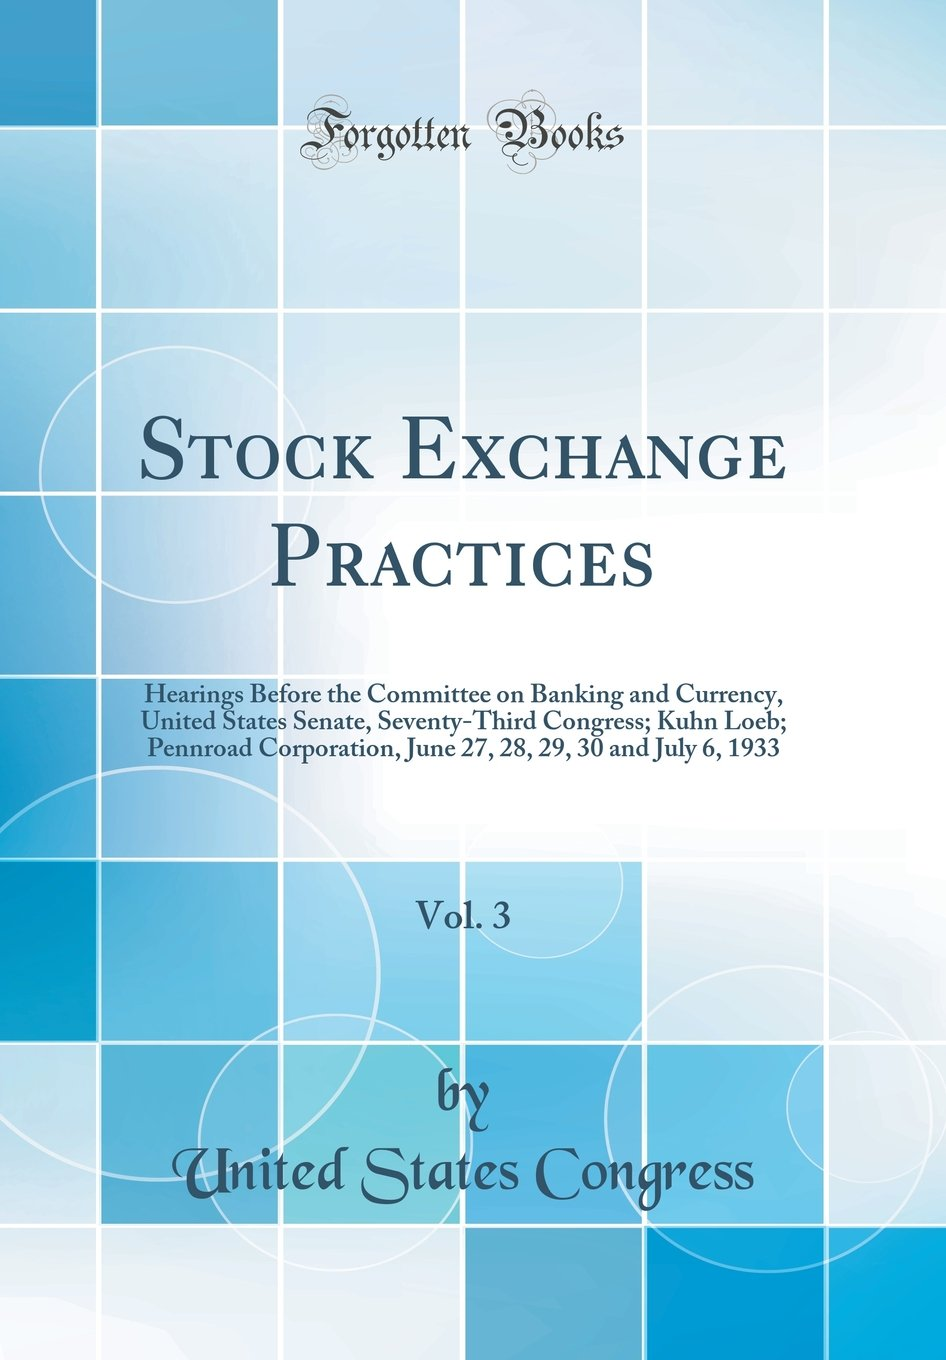 Download Stock Exchange Practices, Vol. 3: Hearings Before the Committee on Banking and Currency, United States Senate, Seventy-Third Congress; Kuhn Loeb; ... 28, 29, 30 and July 6, 1933 (Classic Reprint) pdf epub